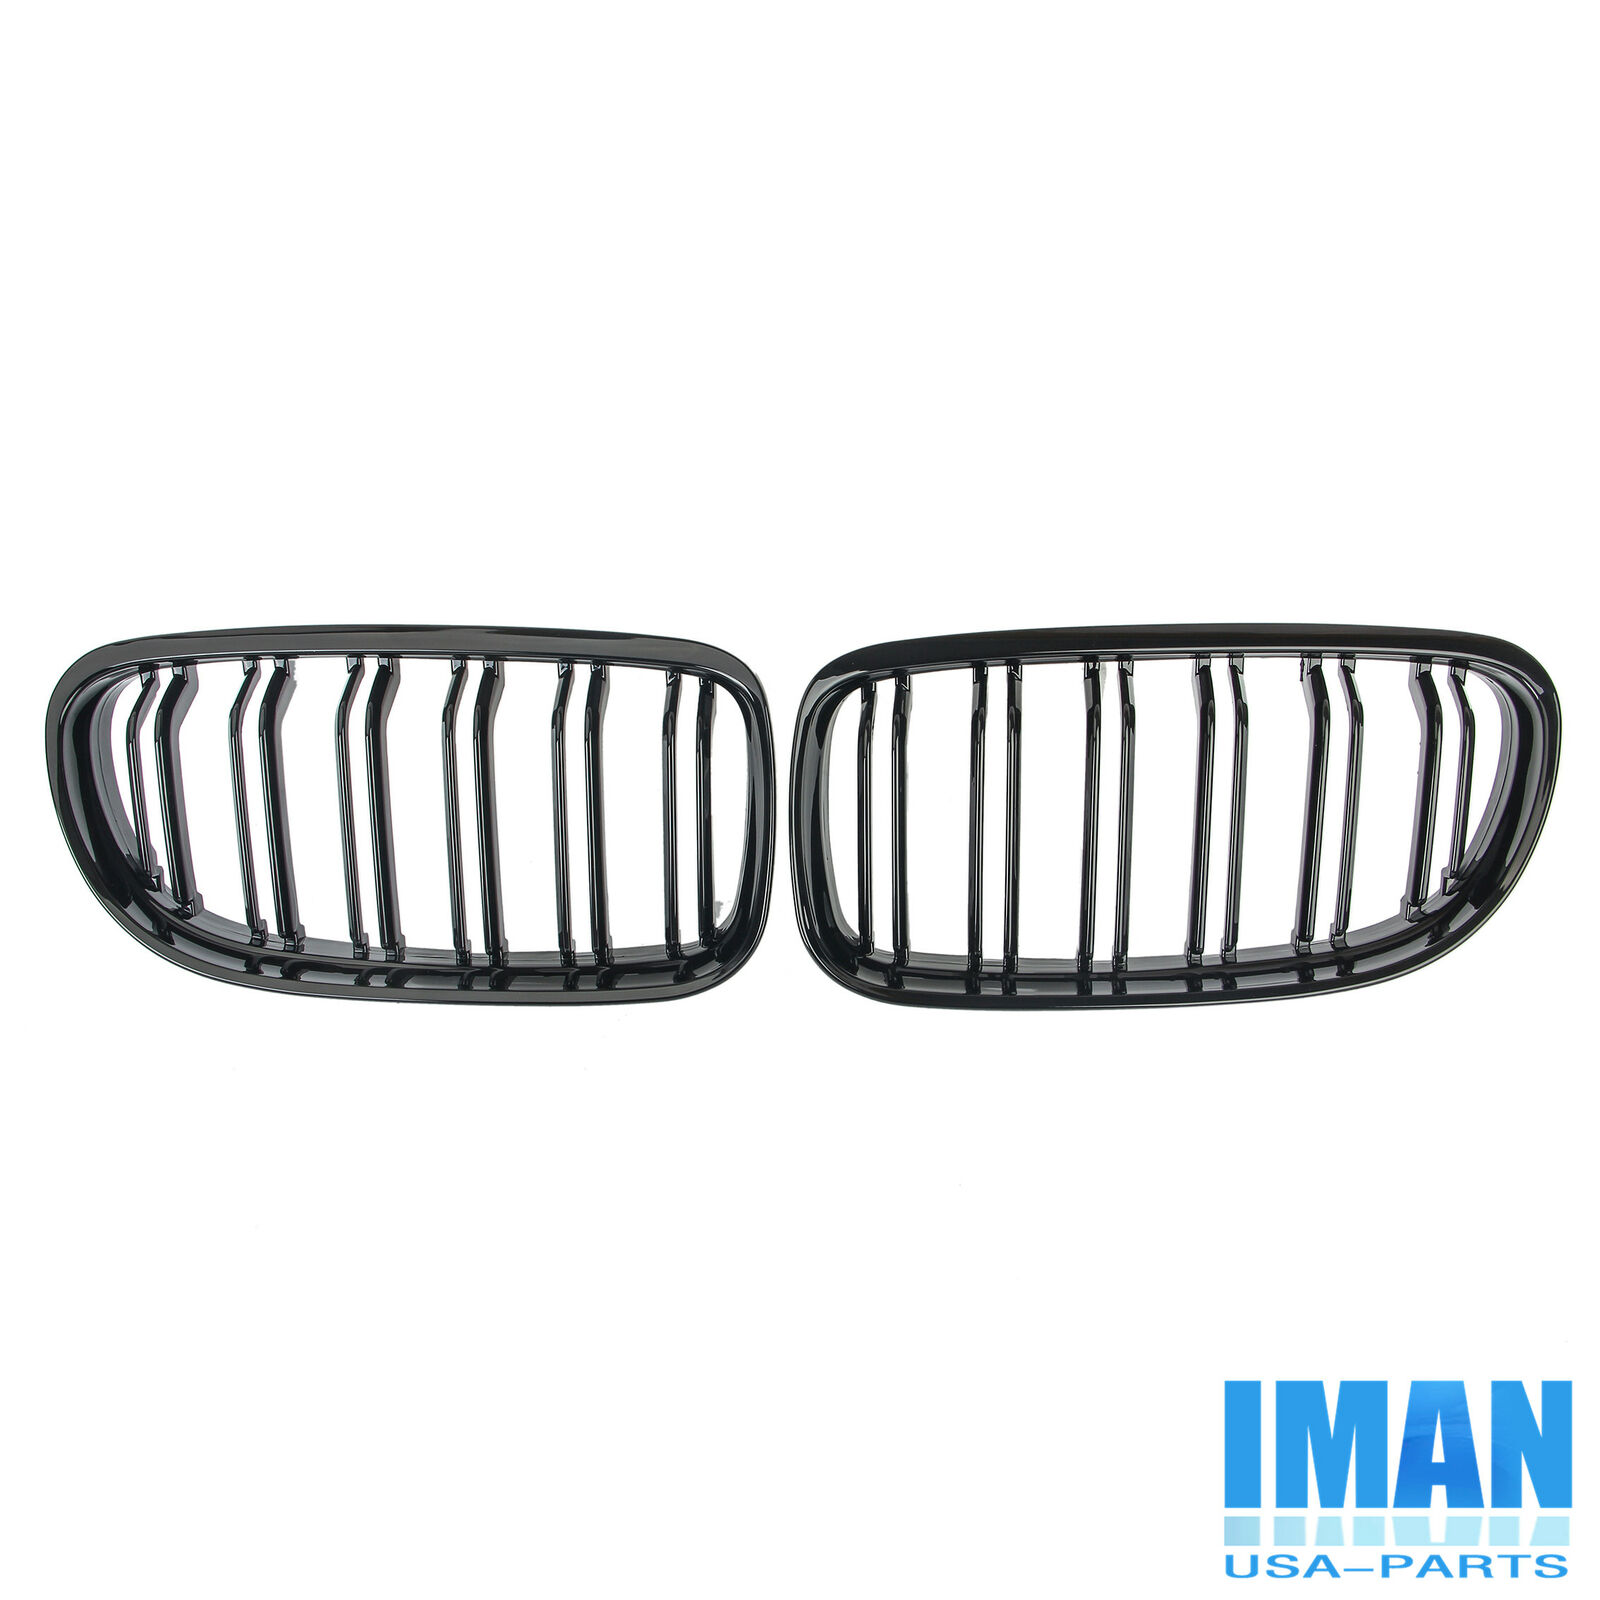 Gloss Black M3 Style Front Kidney Grille For Bmw Grill E90